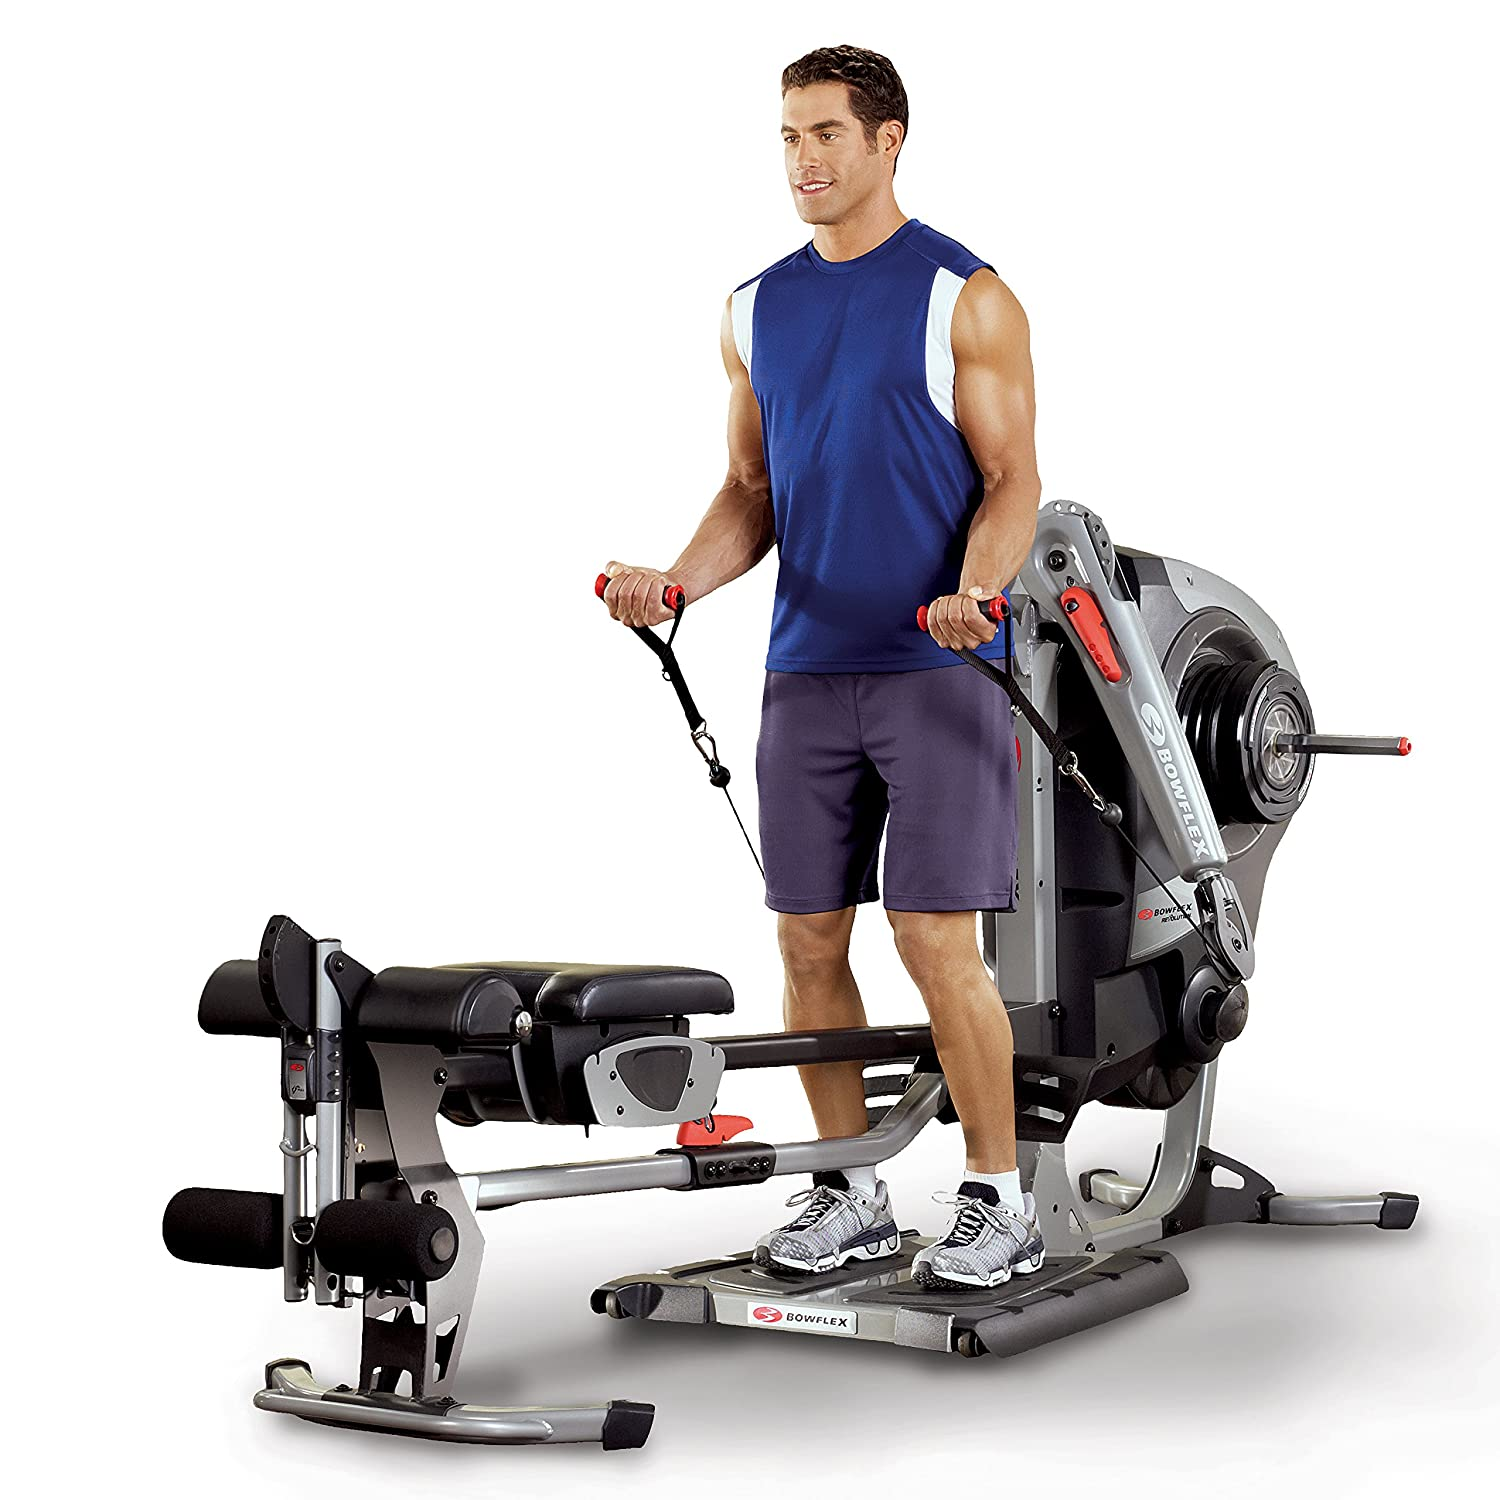 Best Home Exercise Equipment Under 200: Bowflex Revolution Review July 2018